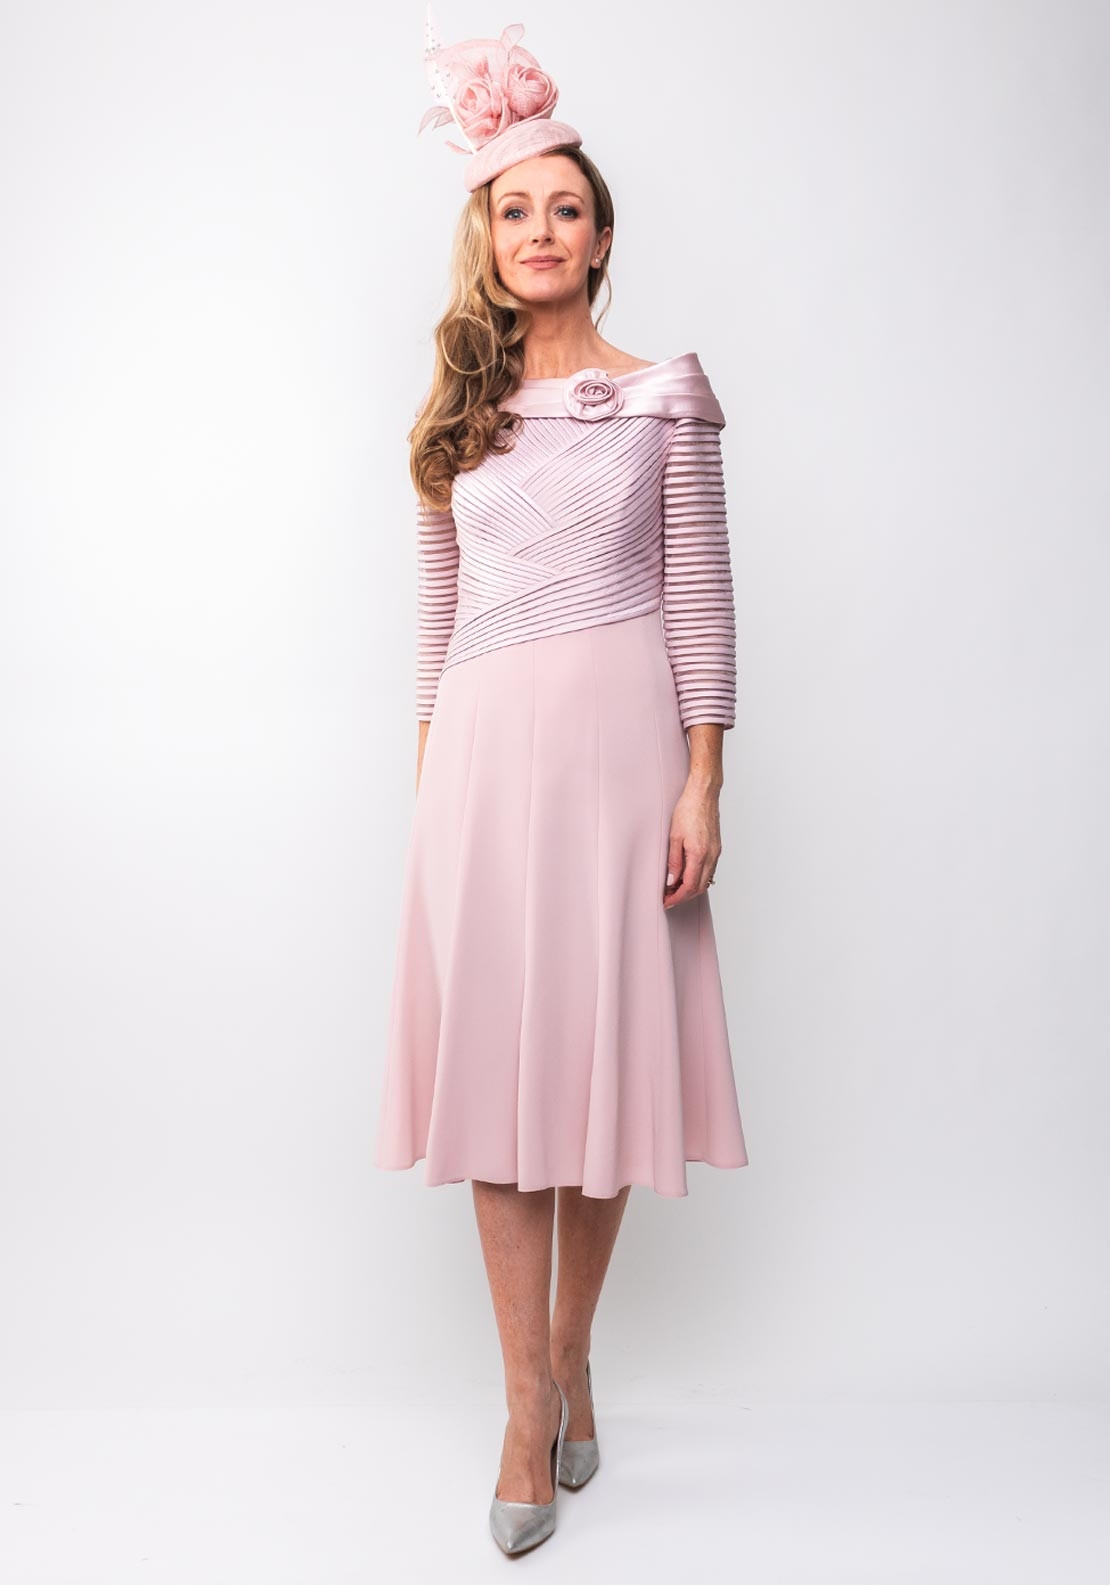 b039e7d408 Couture Club Ribbon Bodice Flared Dress, Pink. Be the first to review this  product